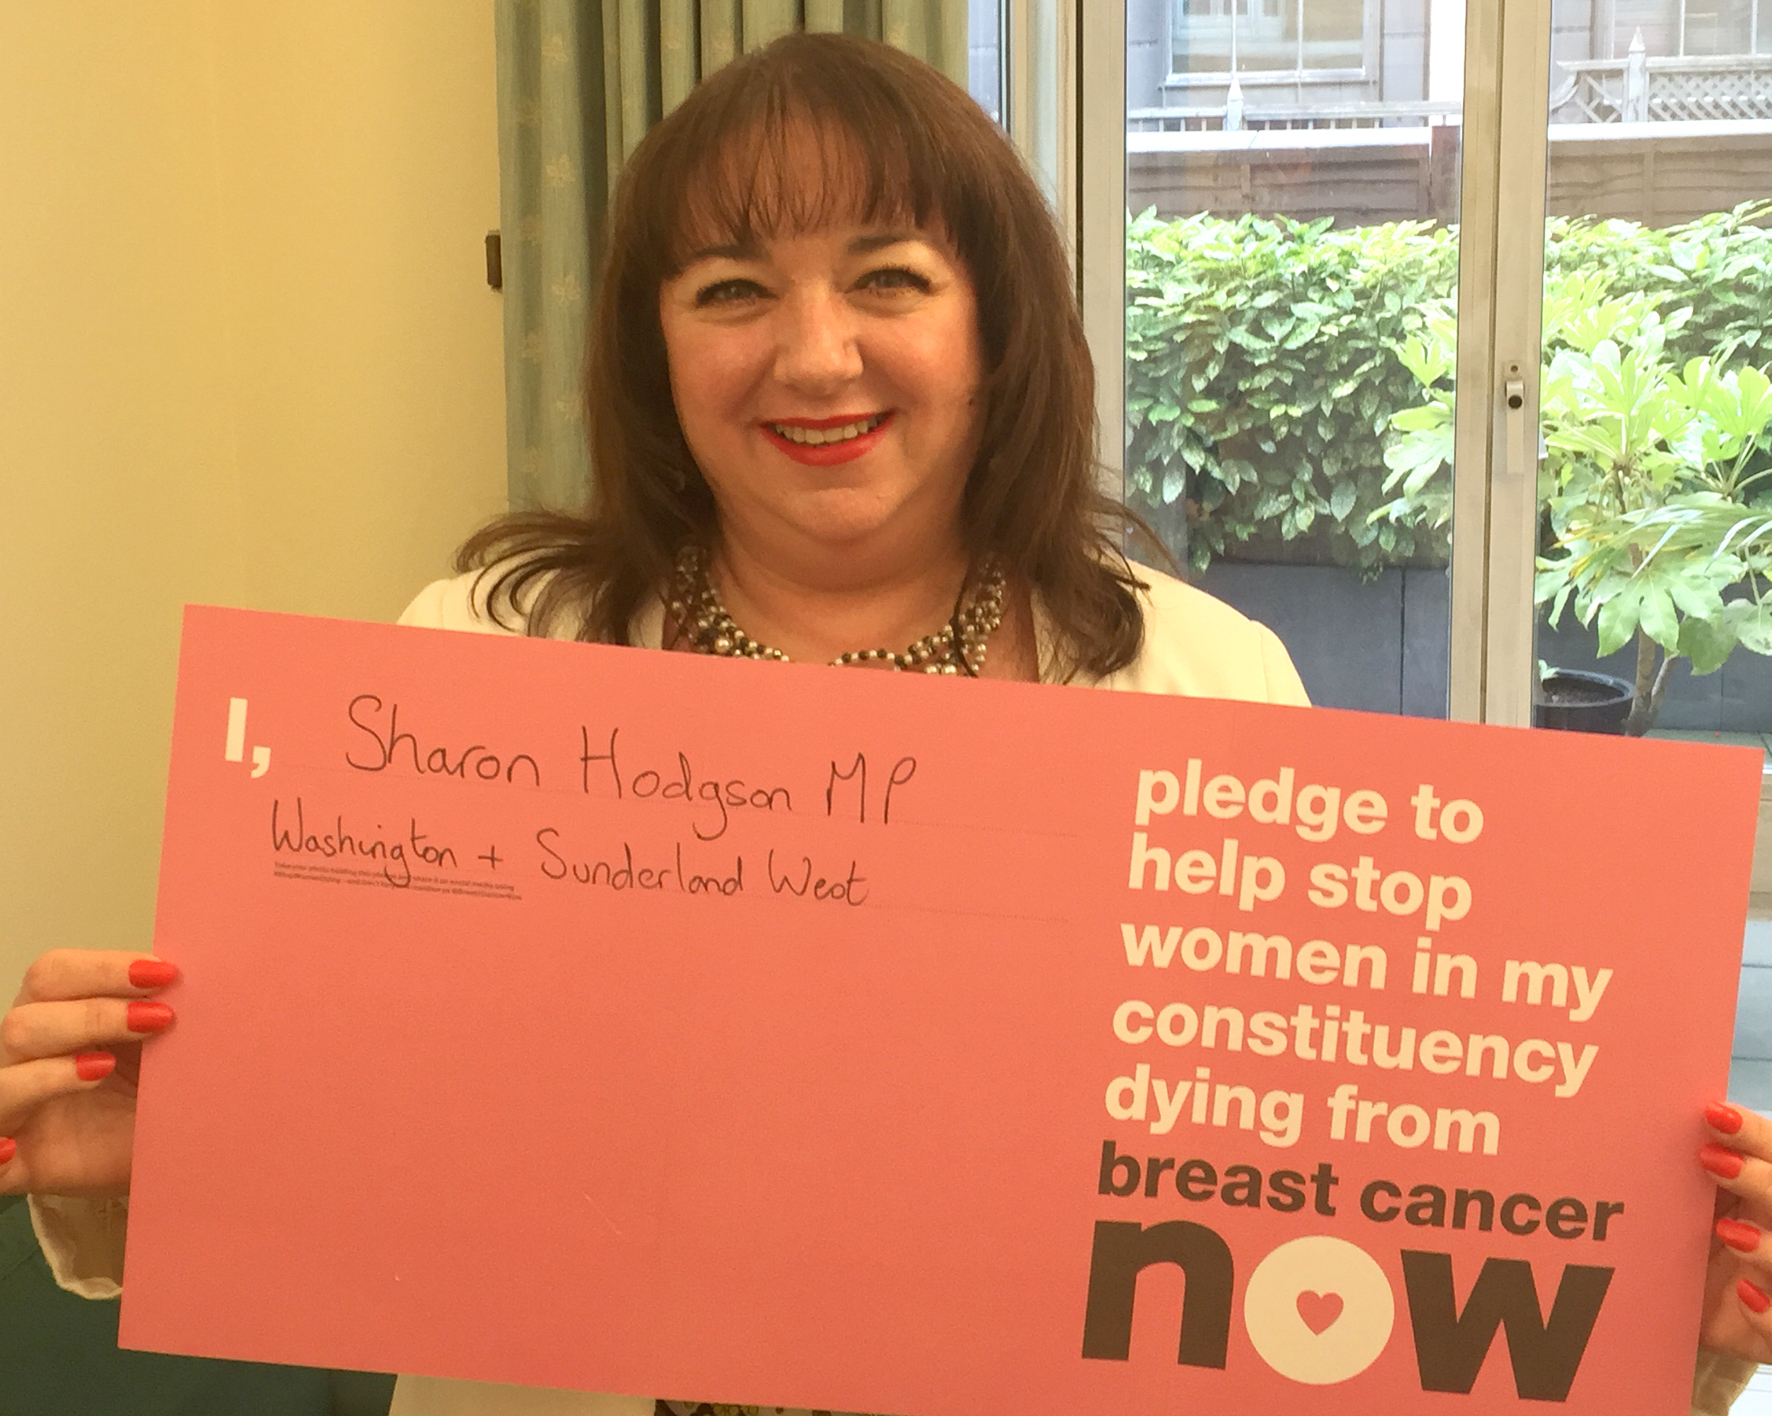 Sharon Hodgson MP pledges to help stop women dying by becoming Breast Cancer Ambassador